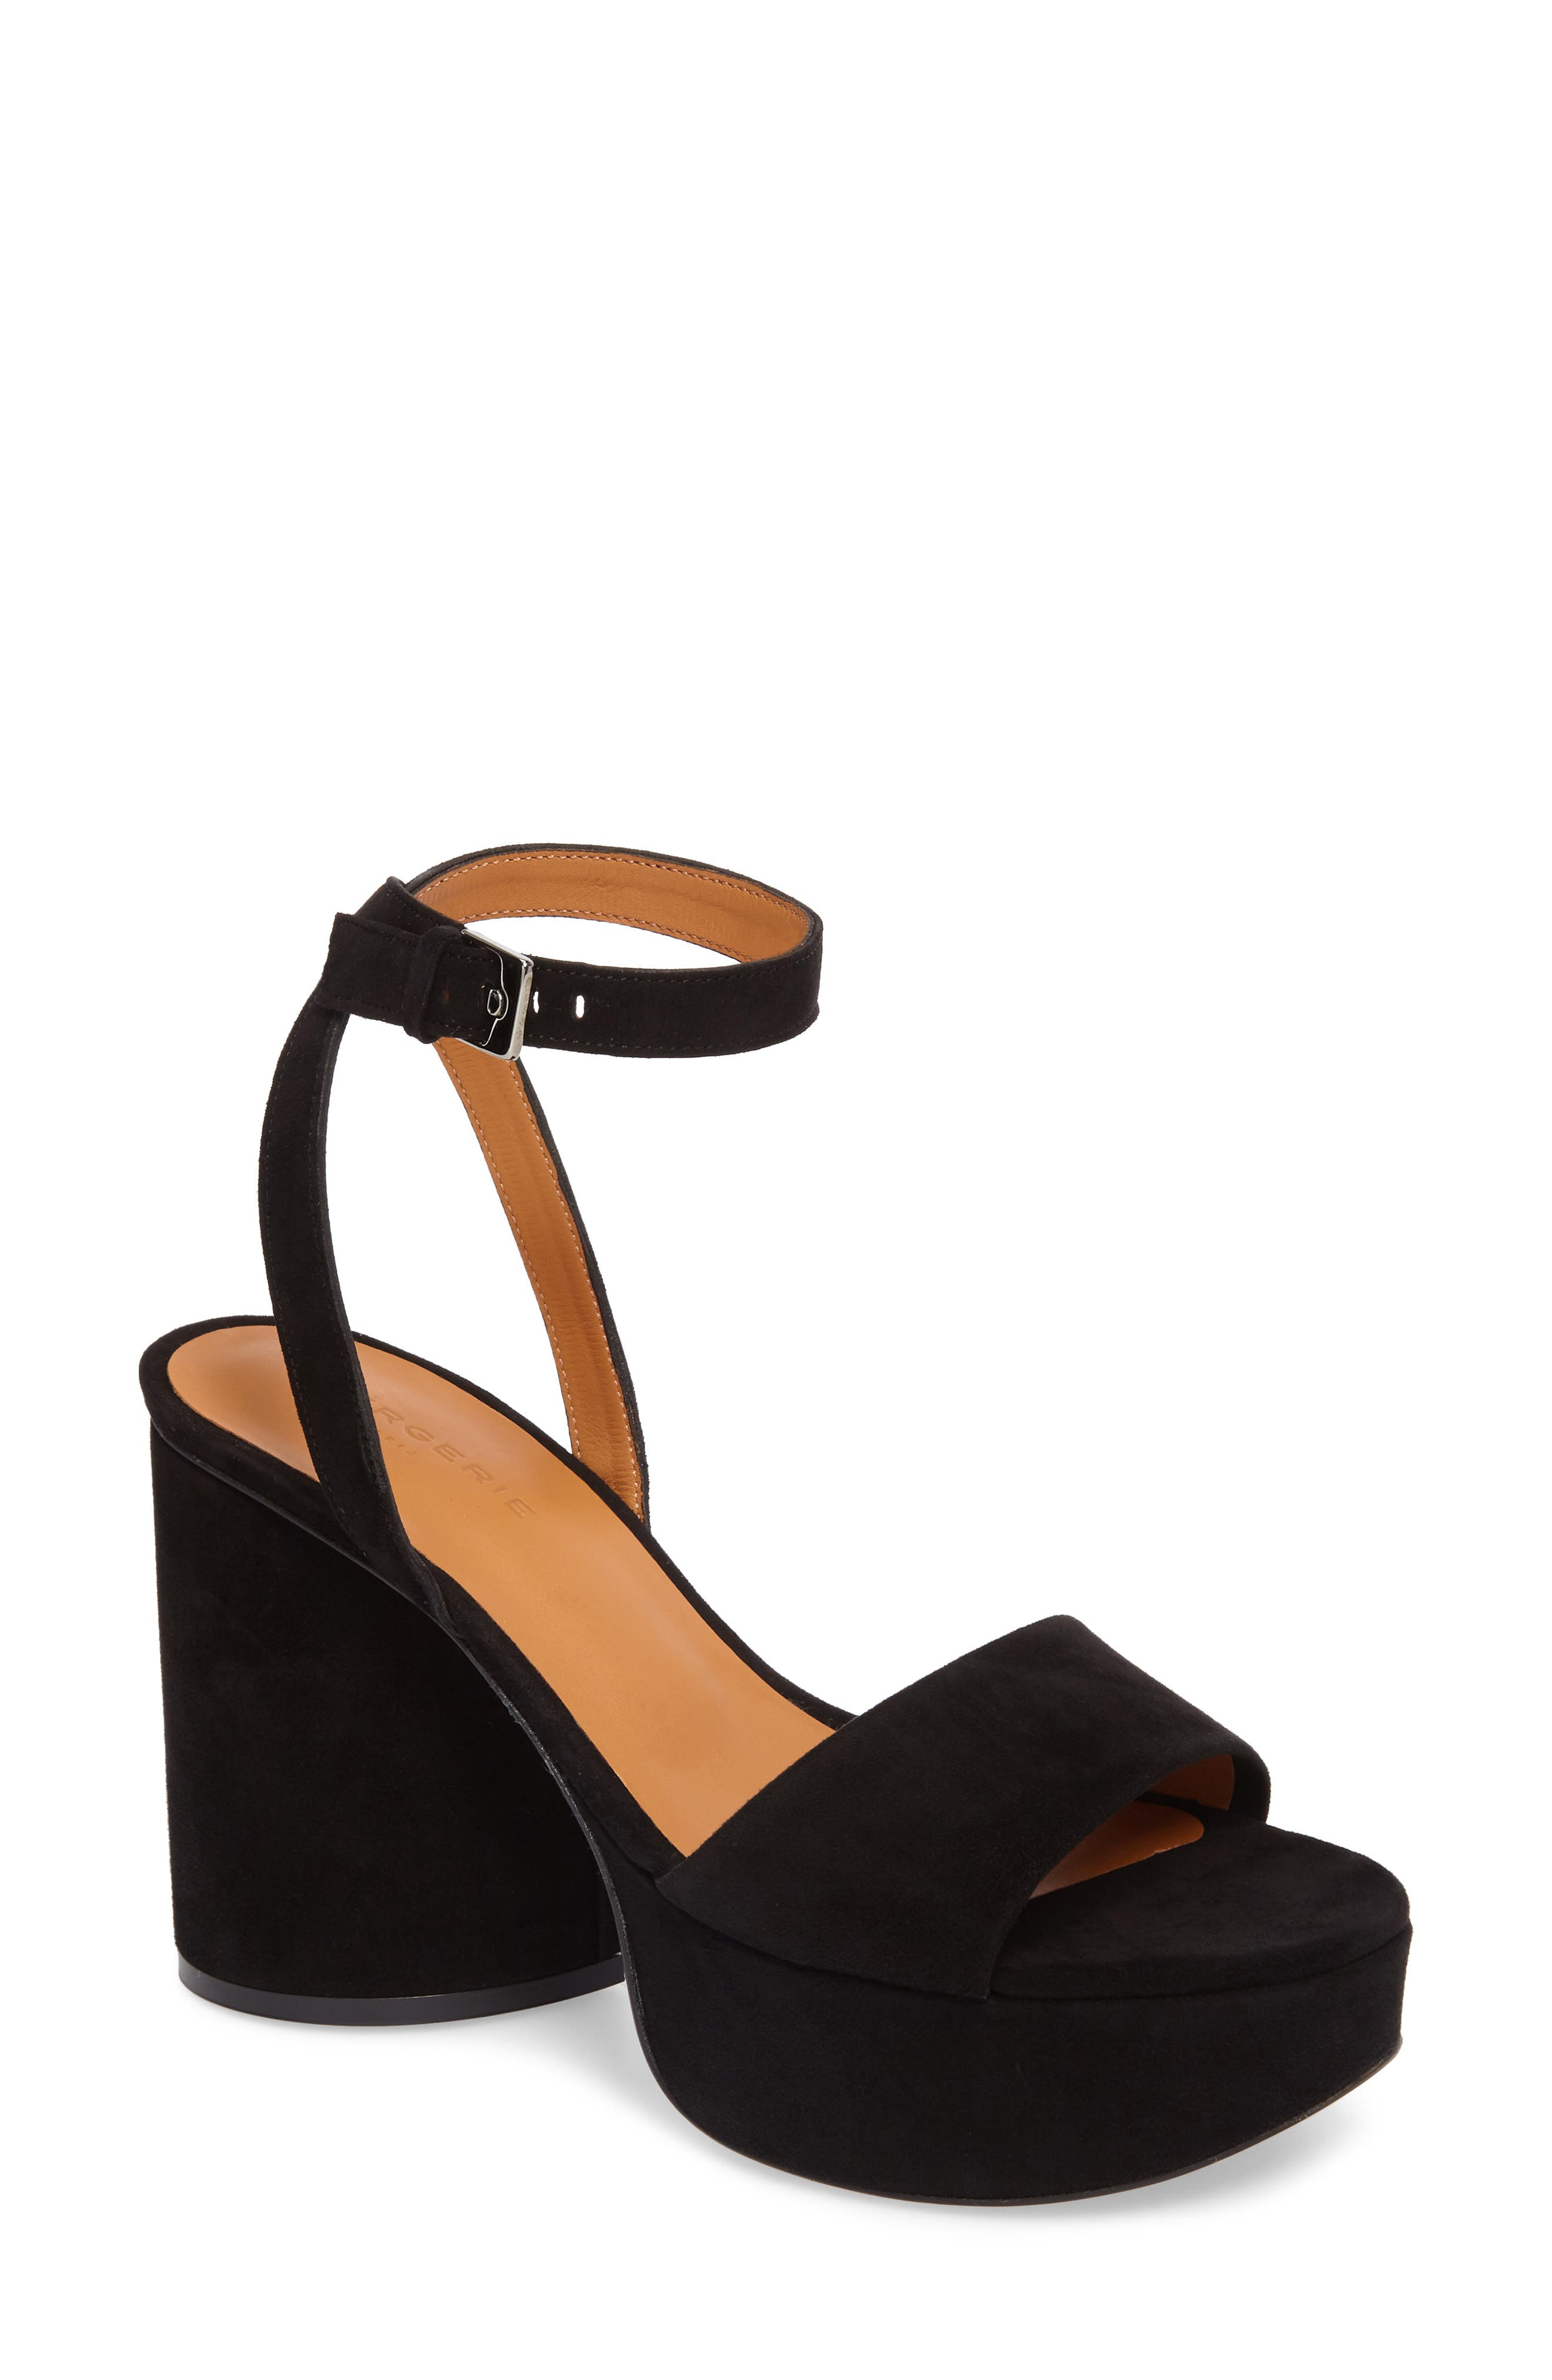 Vionica Platform Ankle Strap Sandal,                             Main thumbnail 1, color,                             Black